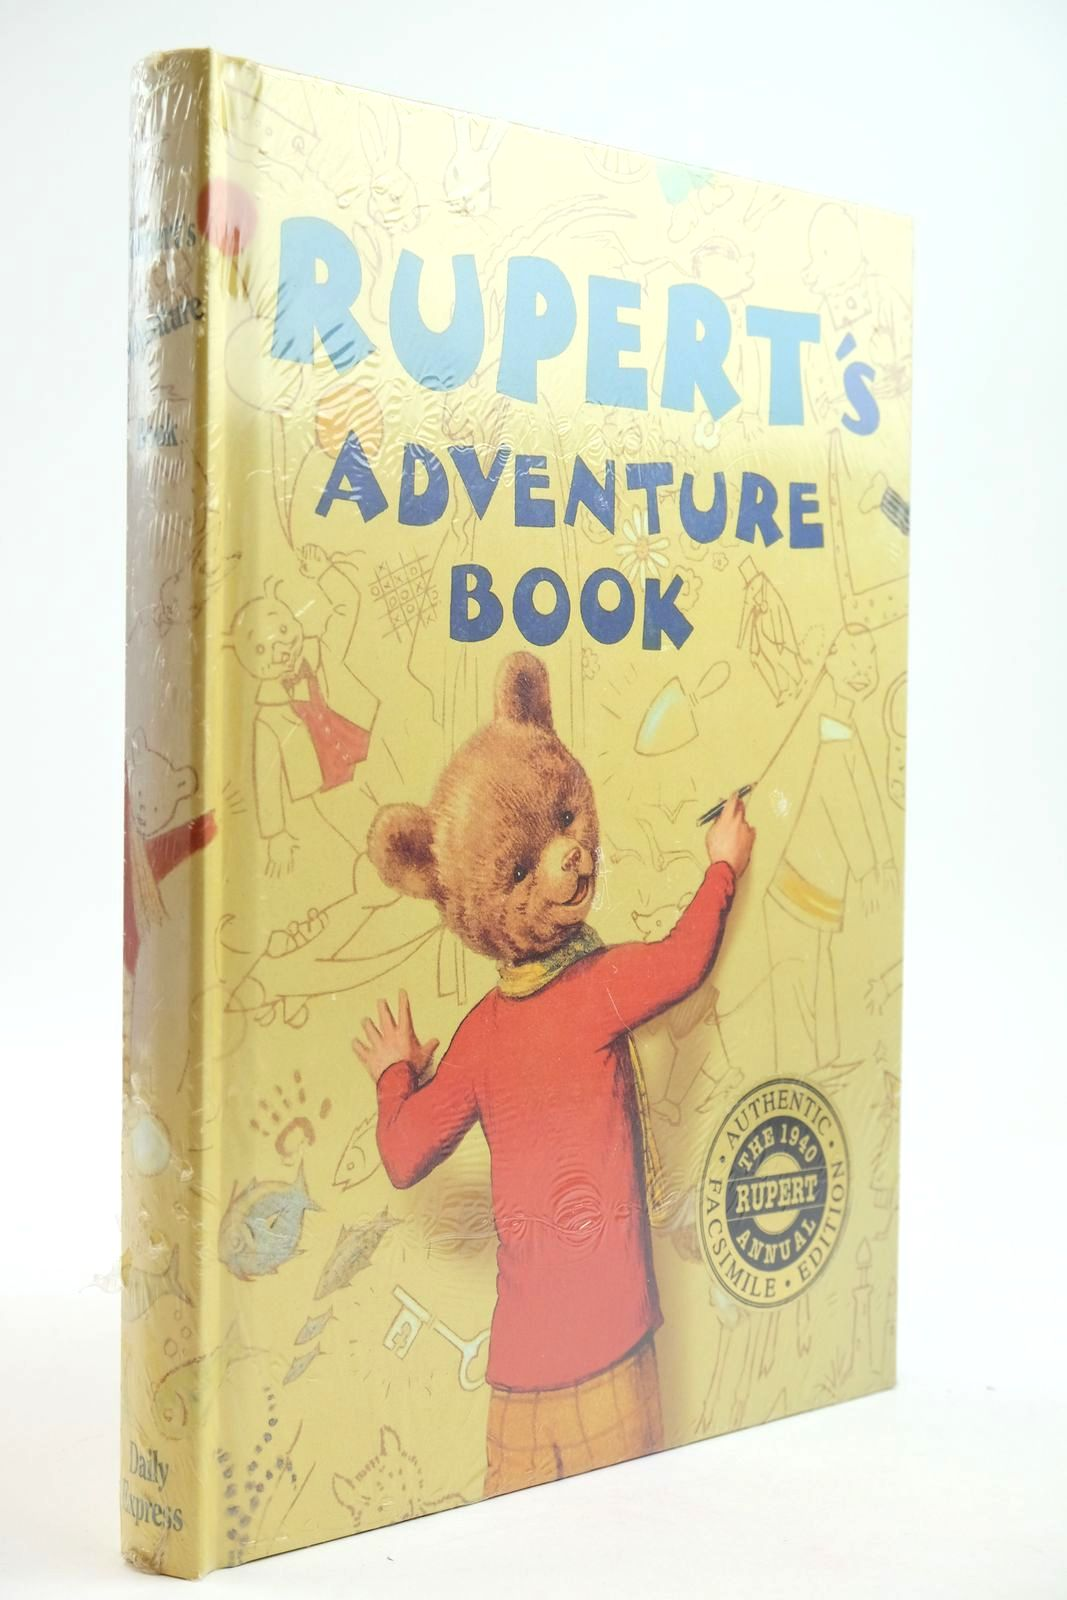 Photo of RUPERT ANNUAL 1940 (FACSIMILE) - RUPERT'S ADVENTURE BOOK written by Bestall, Alfred illustrated by Bestall, Alfred published by Annual Concepts Limited (STOCK CODE: 2133909)  for sale by Stella & Rose's Books